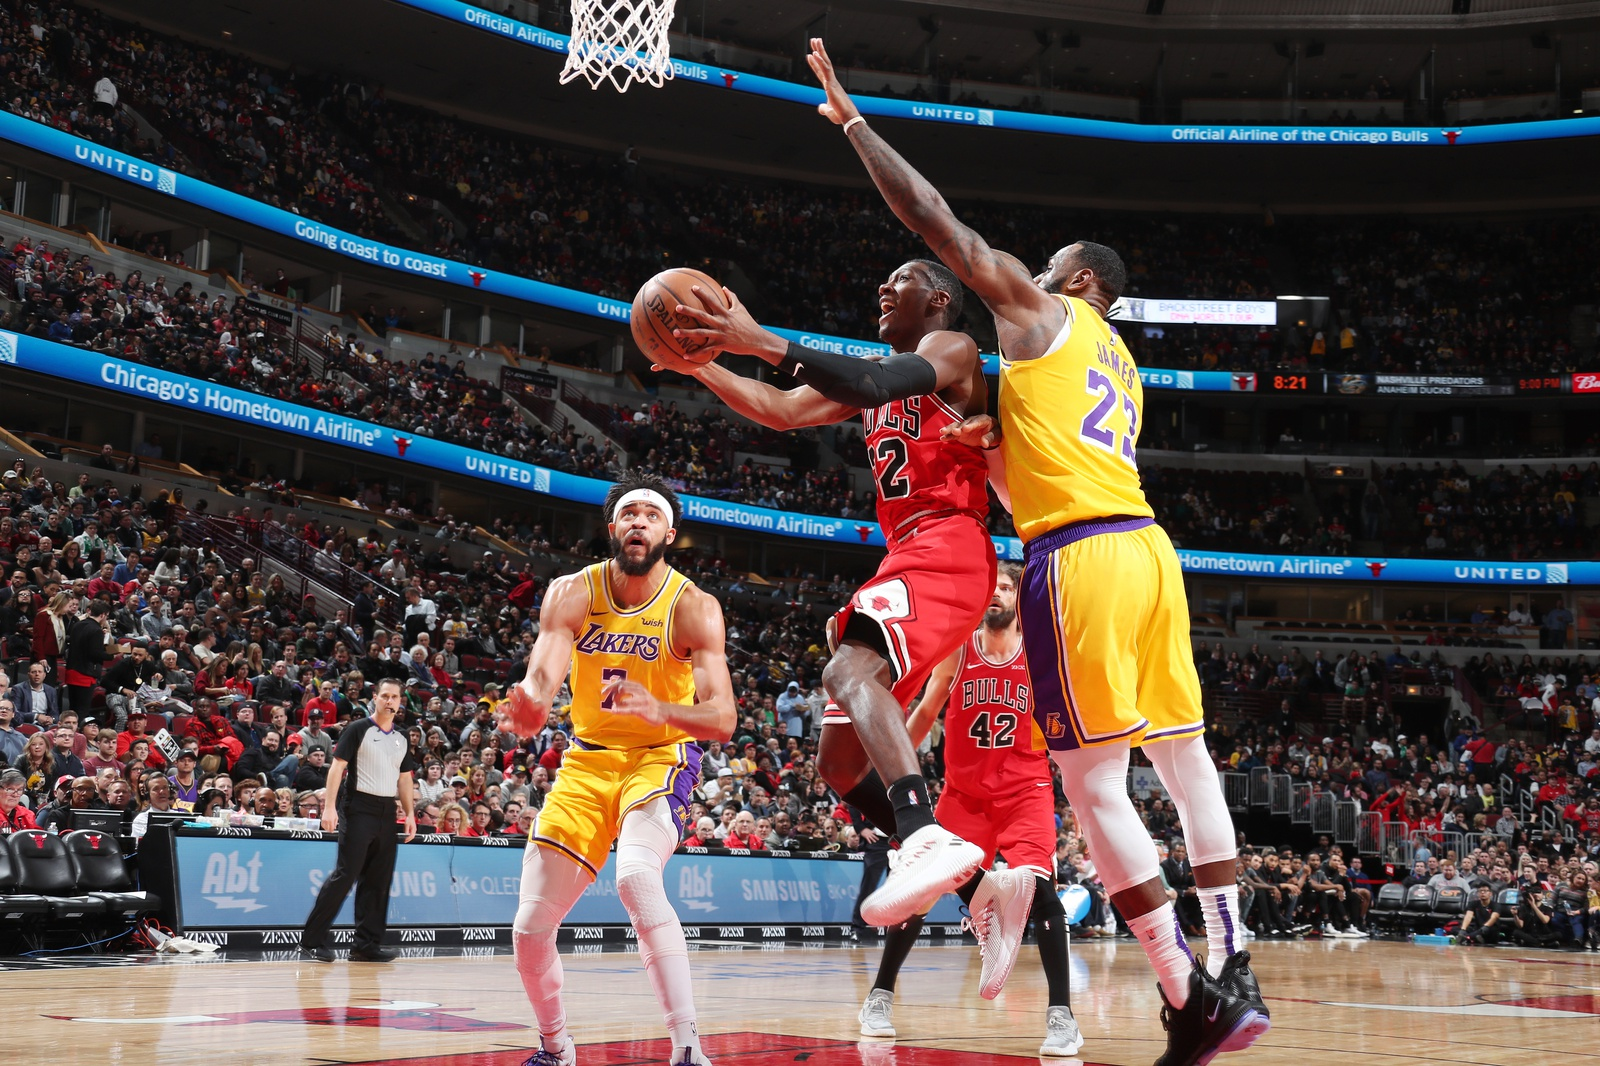 Kris Dunn #32 of the Chicago Bulls shoots the ball against the Los Angeles Lakers on March 12, 2019 at the United Center in Chicago, Illinois.